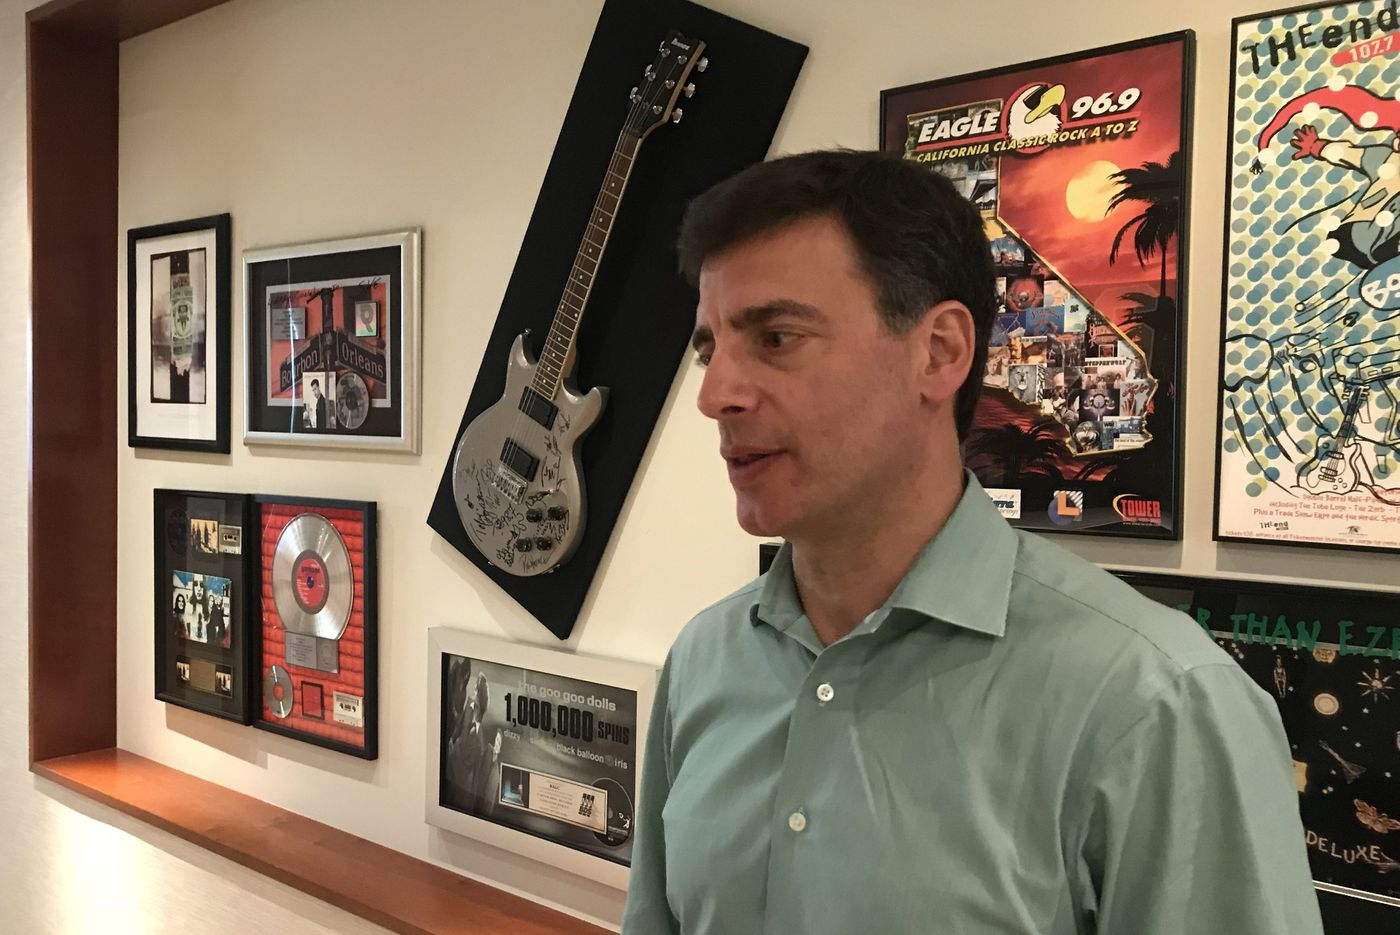 'We are big believers in the city and we want to be part of it,' says Entercom CEO